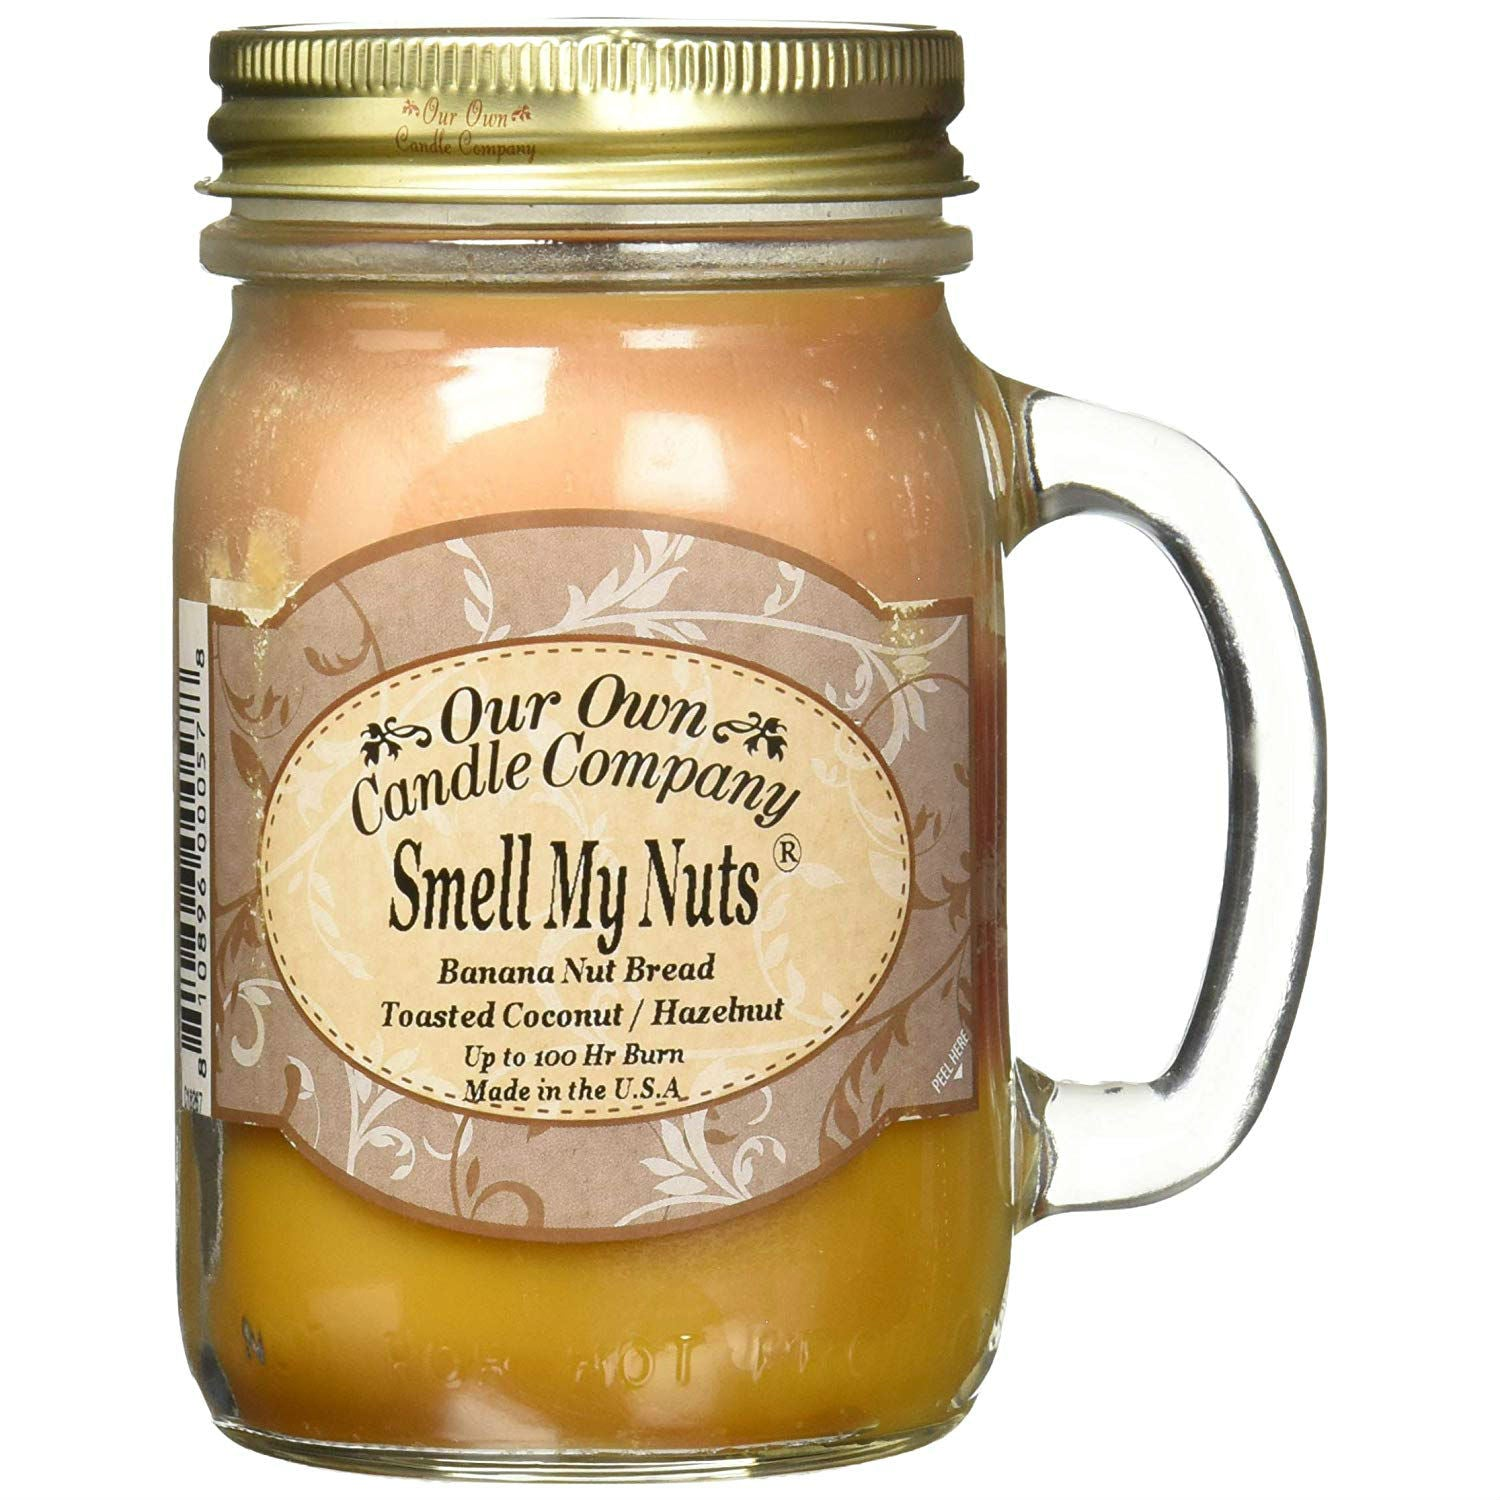 Smell My Nuts Scented Candle - oddgifts.com